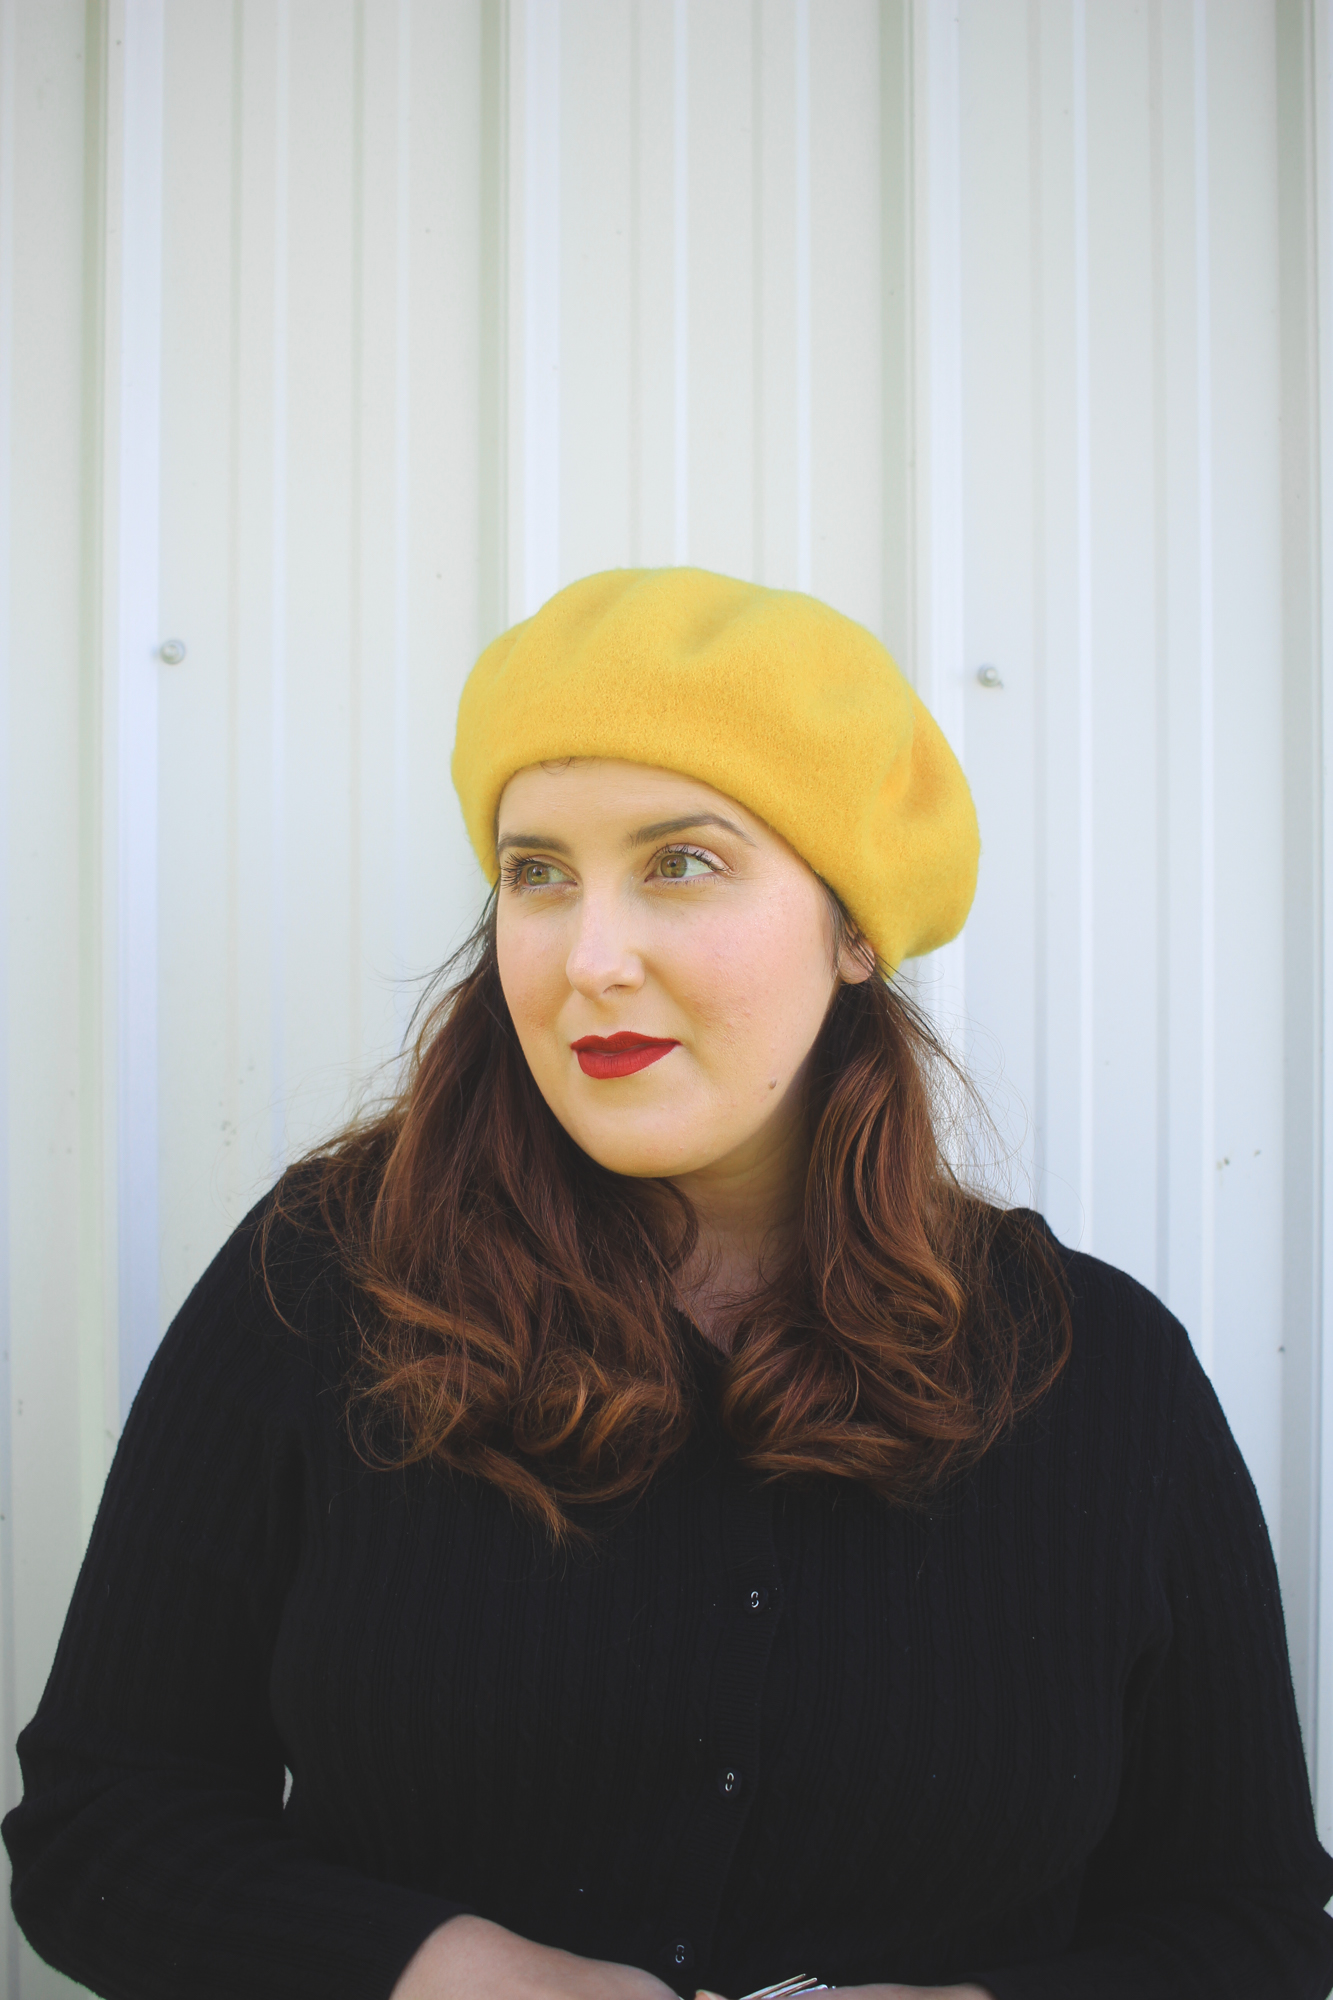 woman with curled hair wearing a yellow beret